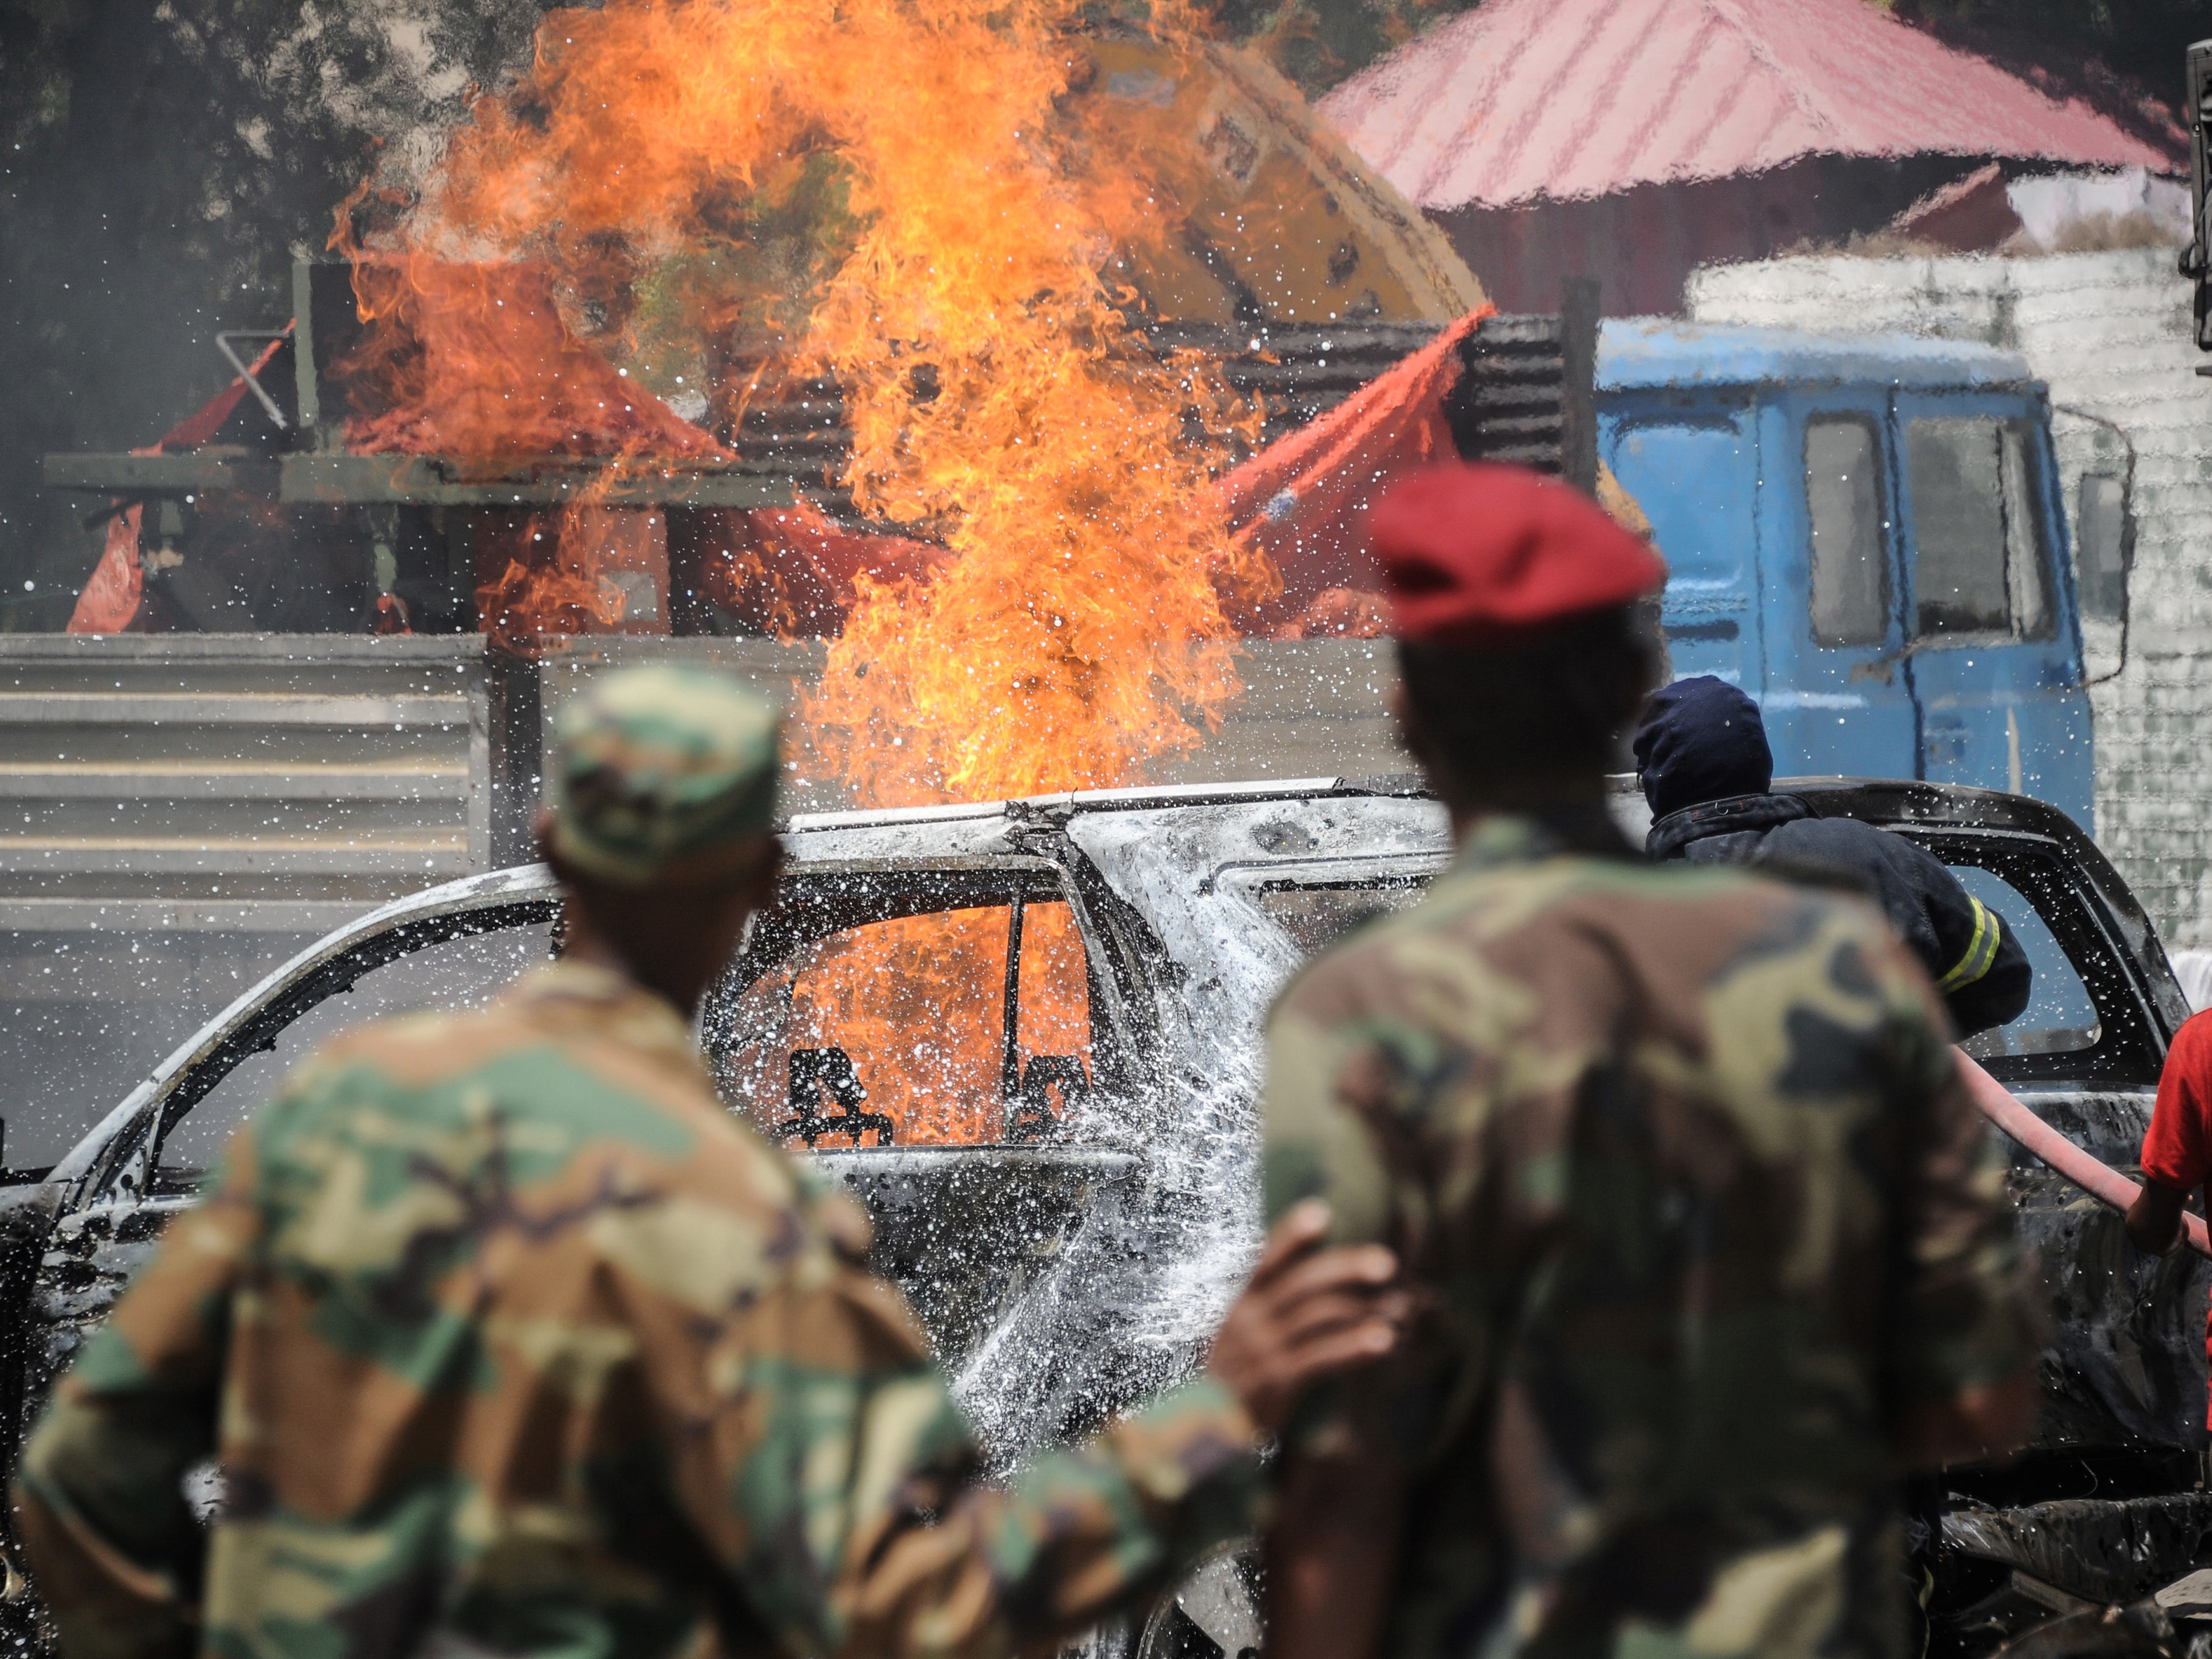 Firefighters try  to extinguish a fire at the scene of a car bombing in Mogadishu, Somalia, on January 29, 20 19.  Two people were killed and five wounded when a car packed with explosives was detonated near the ministry of petroleum in the Somali capital, a security official said.